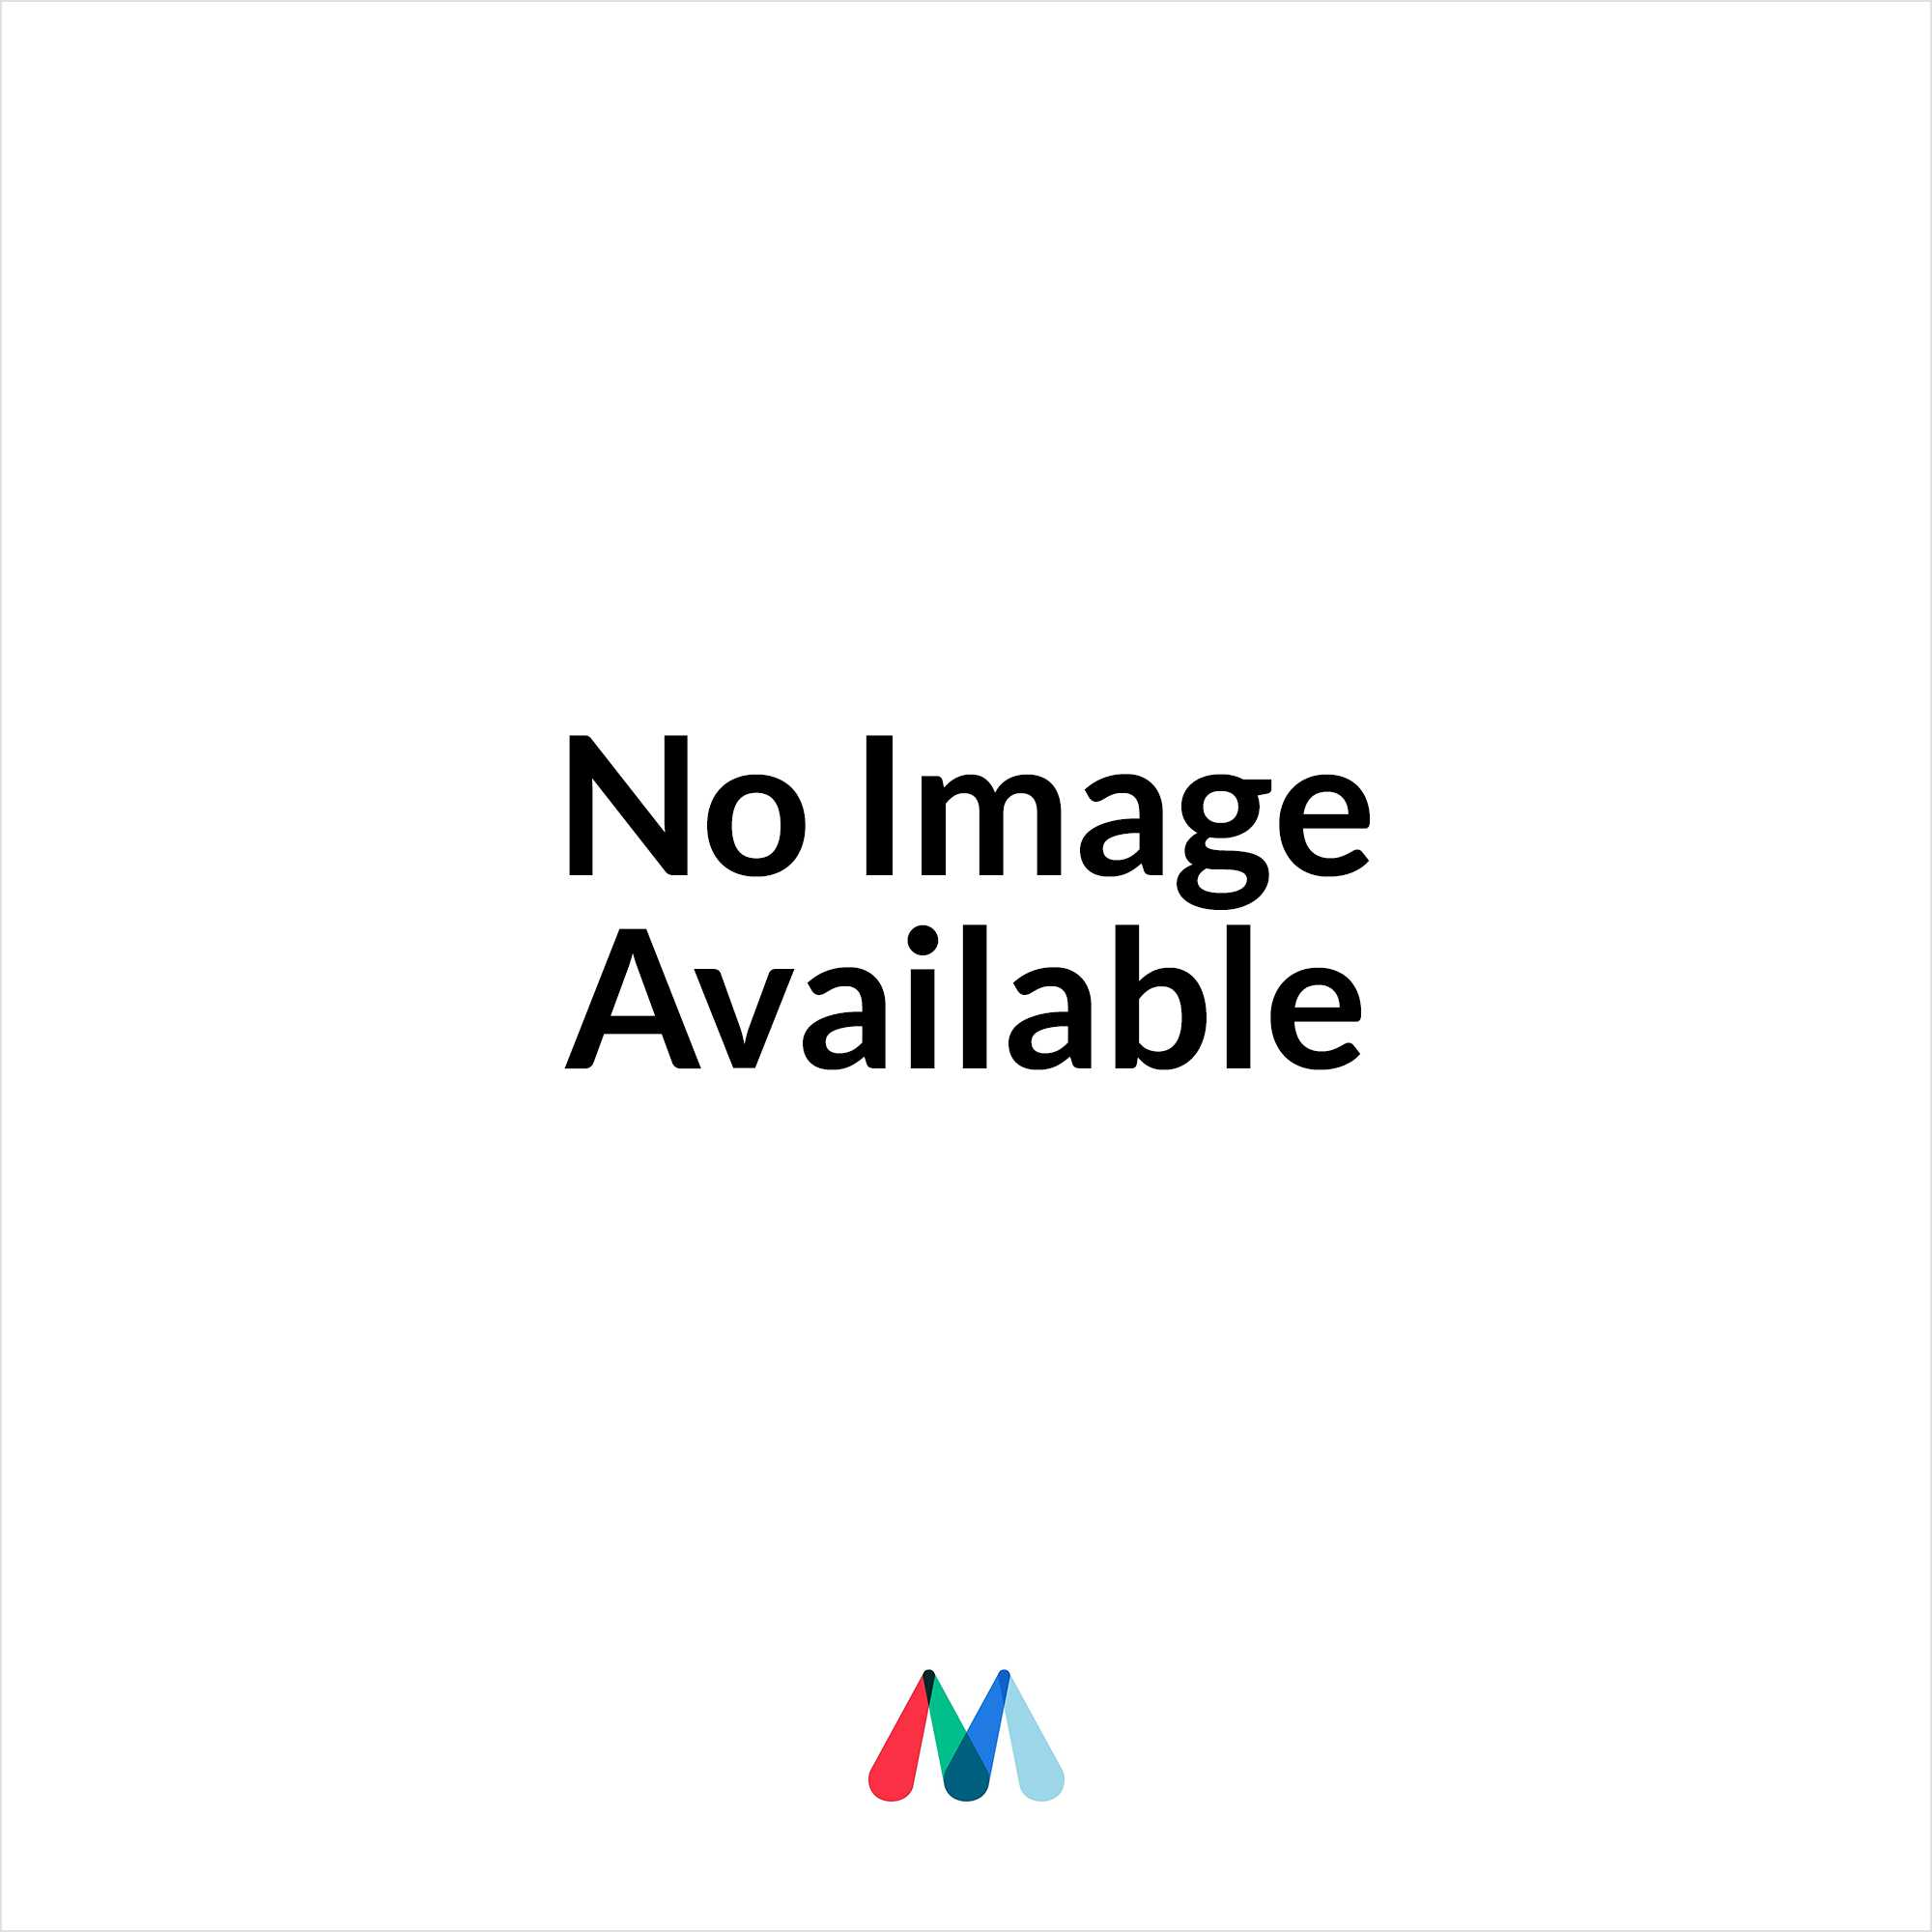 LSV02 Constant voltage IP20 5W/m self-adhesive 5m LED strip pack